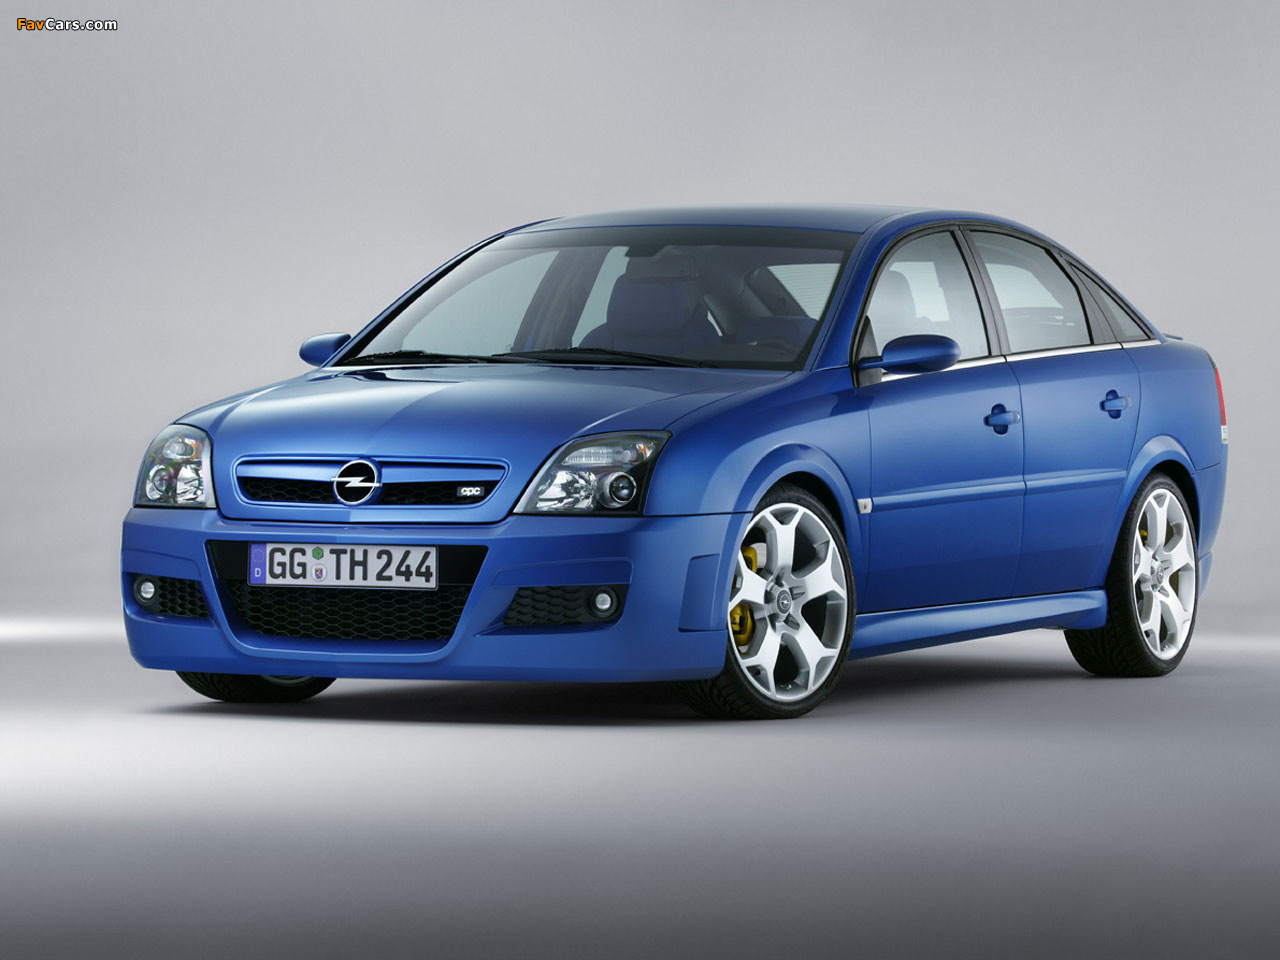 pictures of opel vectra gts twin turbo opc c 2003 05 1280x960. Black Bedroom Furniture Sets. Home Design Ideas